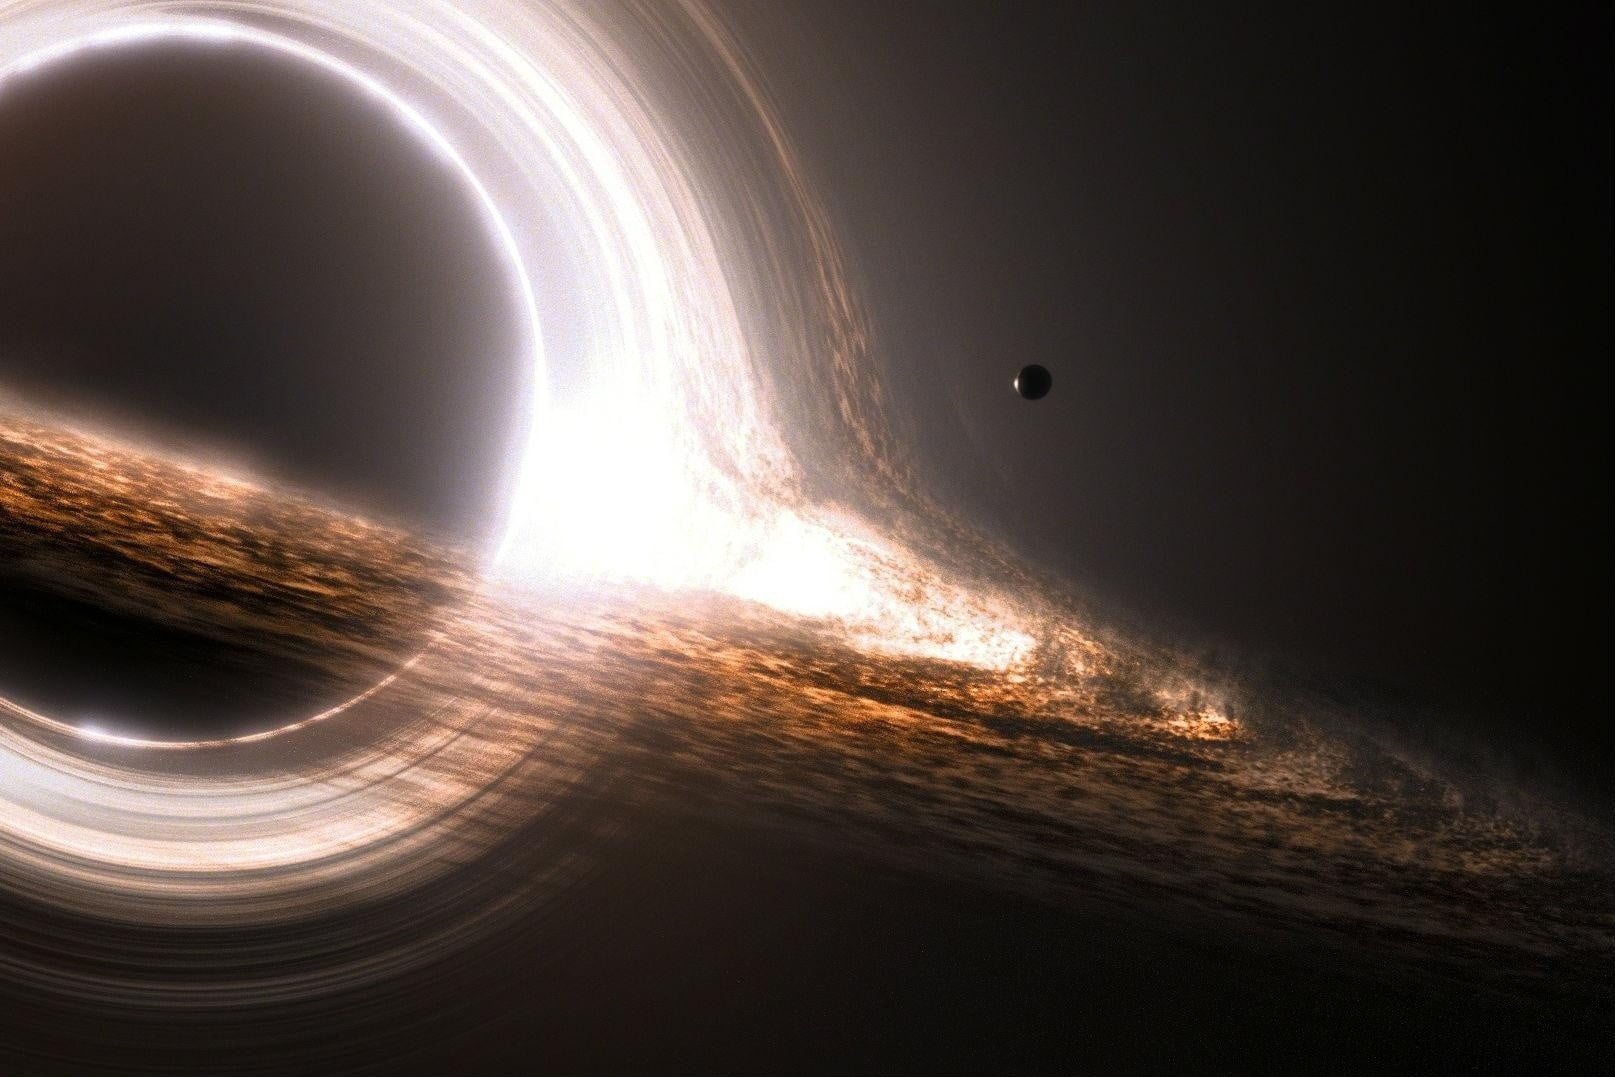 Astronomers just snapped photos of the most massive black hole we've ever observed